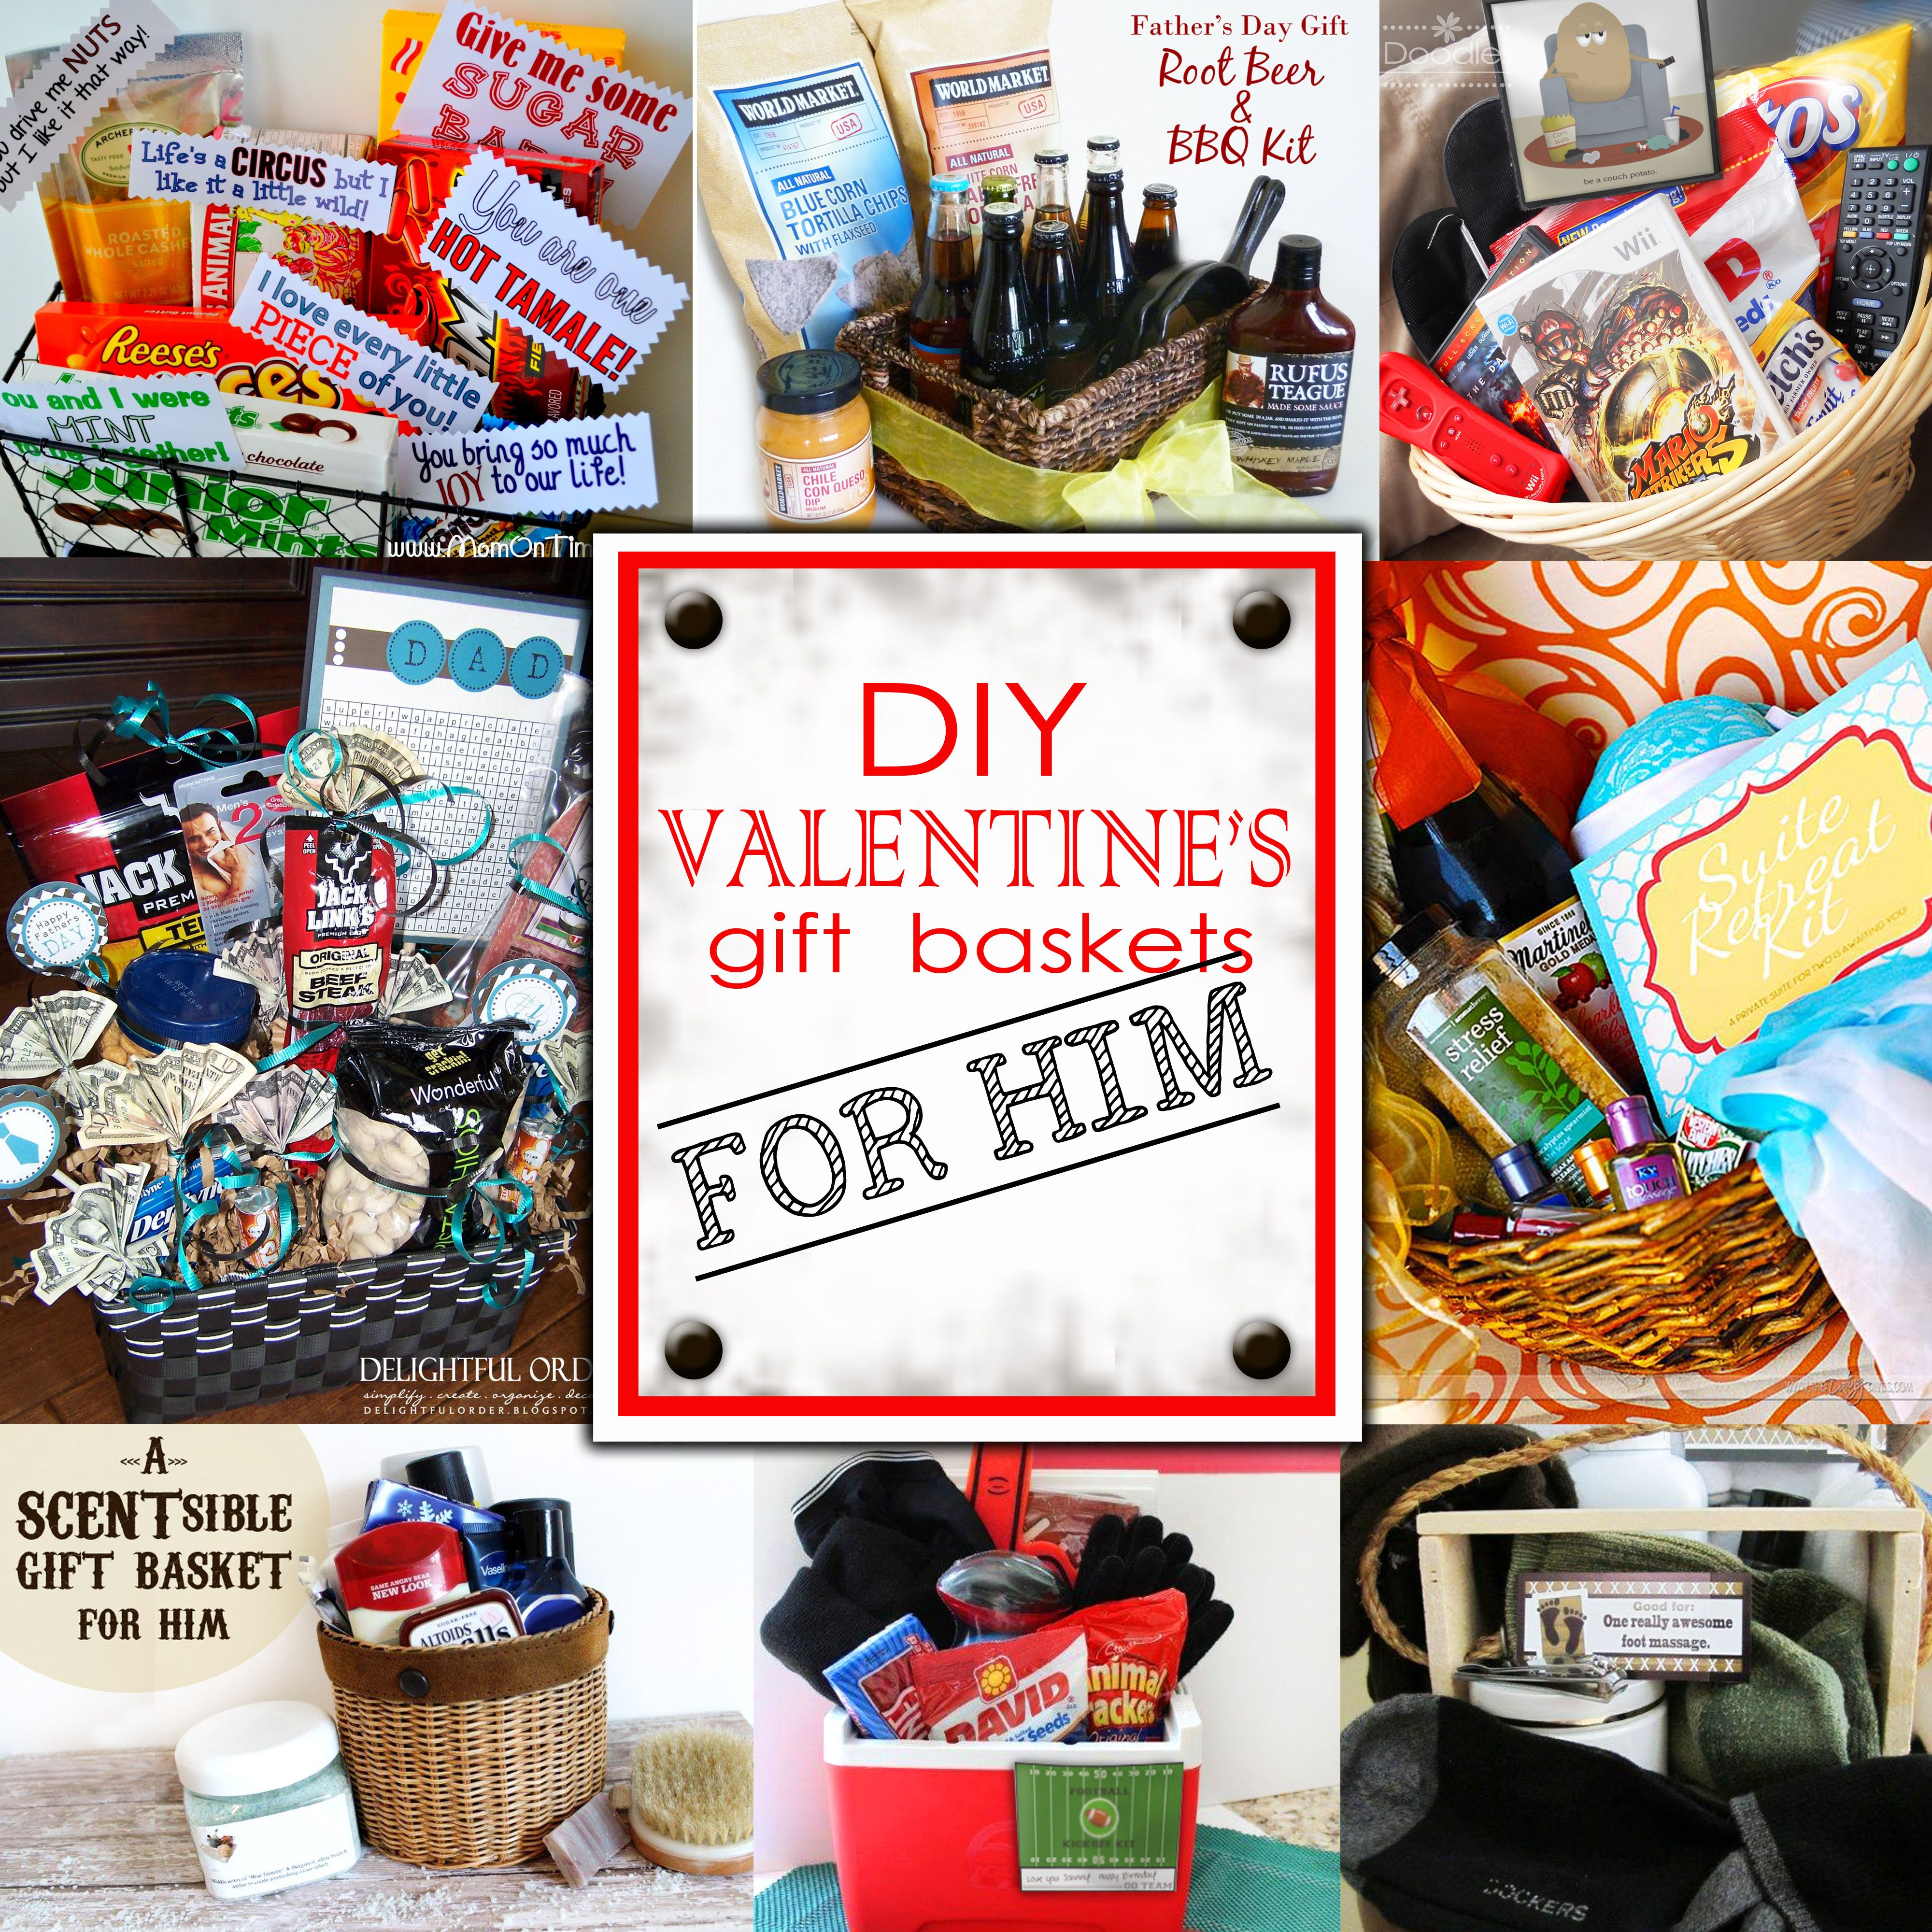 FATHER'S DAY DIY GIFT BASKET IDEAS | Rootbeer & BBQ Gift Basket ...